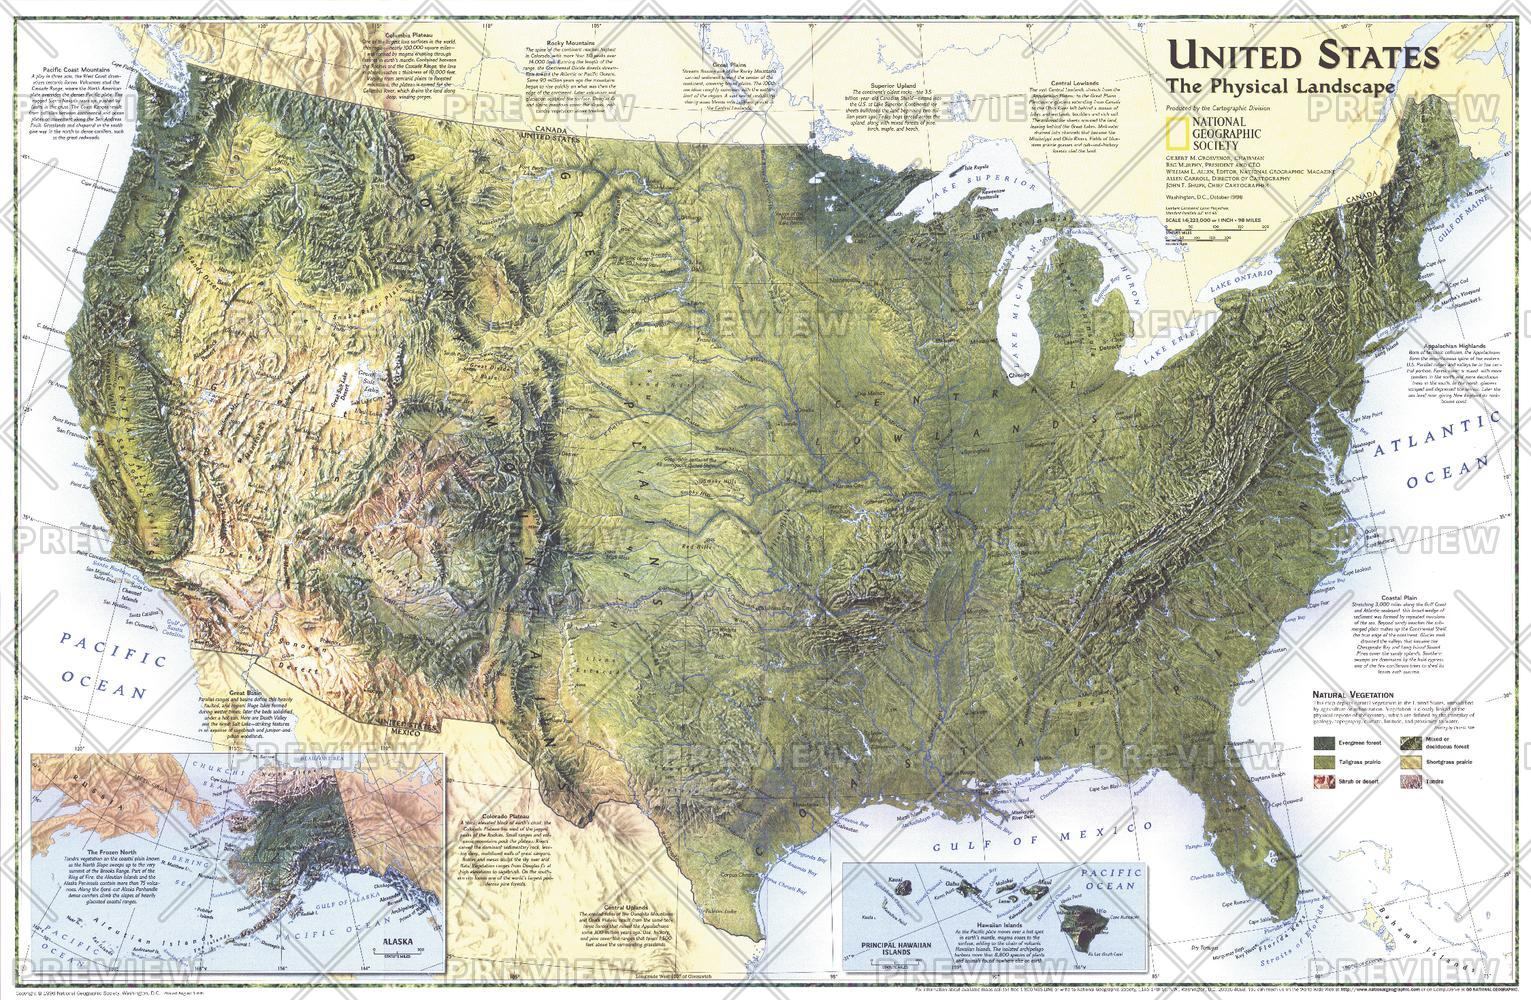 United States, the Physical Landscape  -  Published 1996